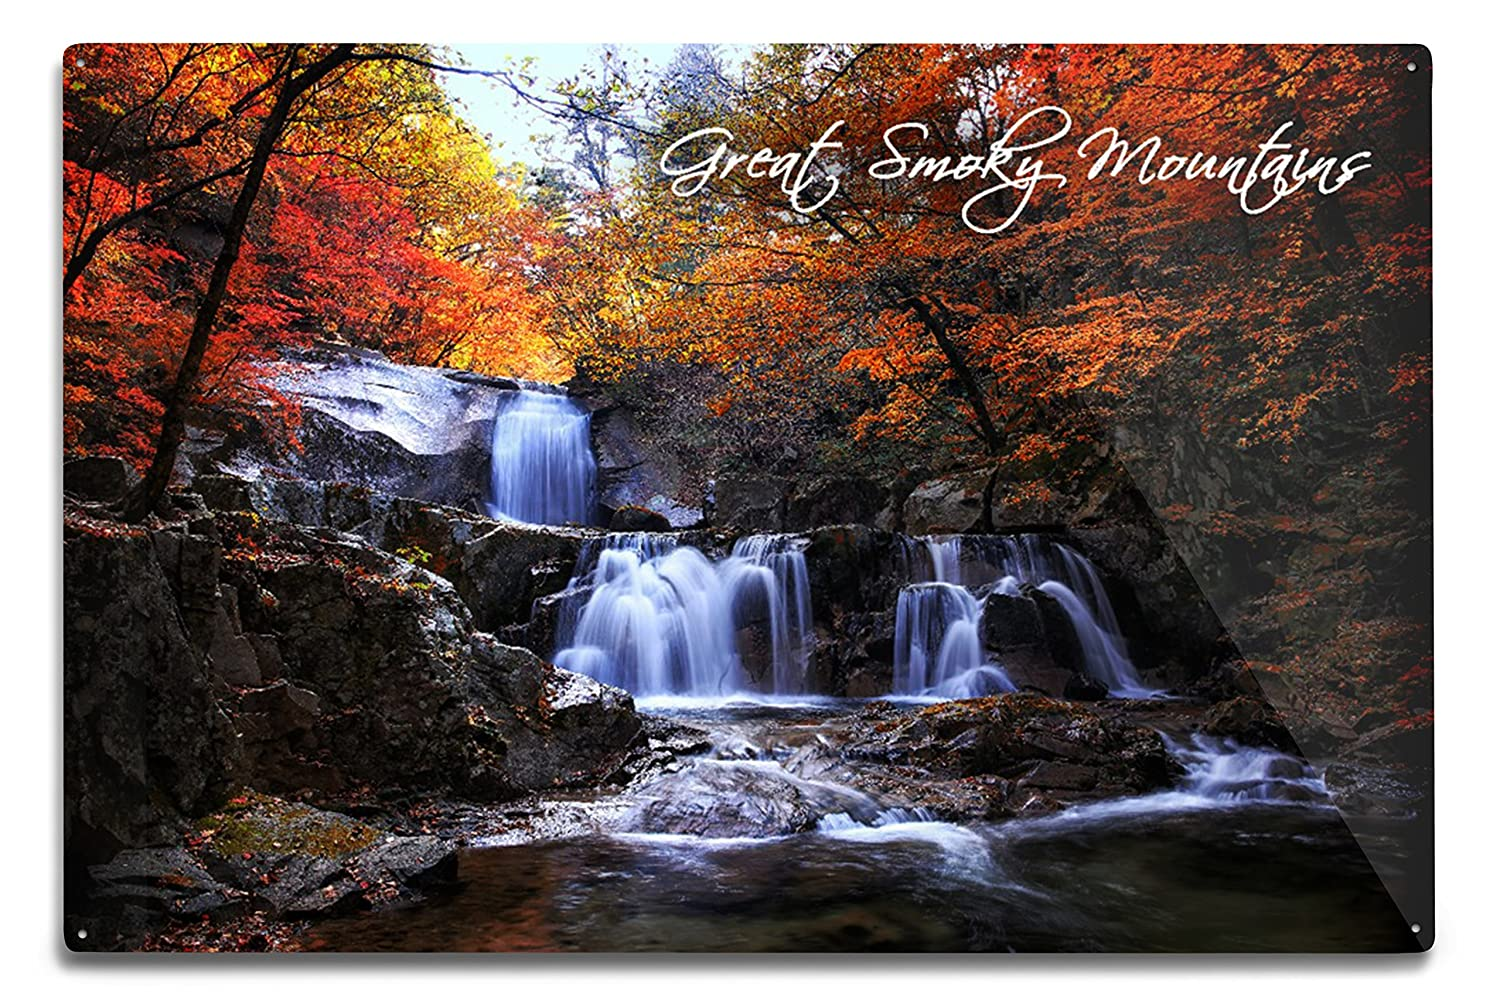 16x24 SIGNED Print Master Art Print - Wall Decor Poster Great Smoky Mountains Tennessee Waterfall and Autumn Colors 86429